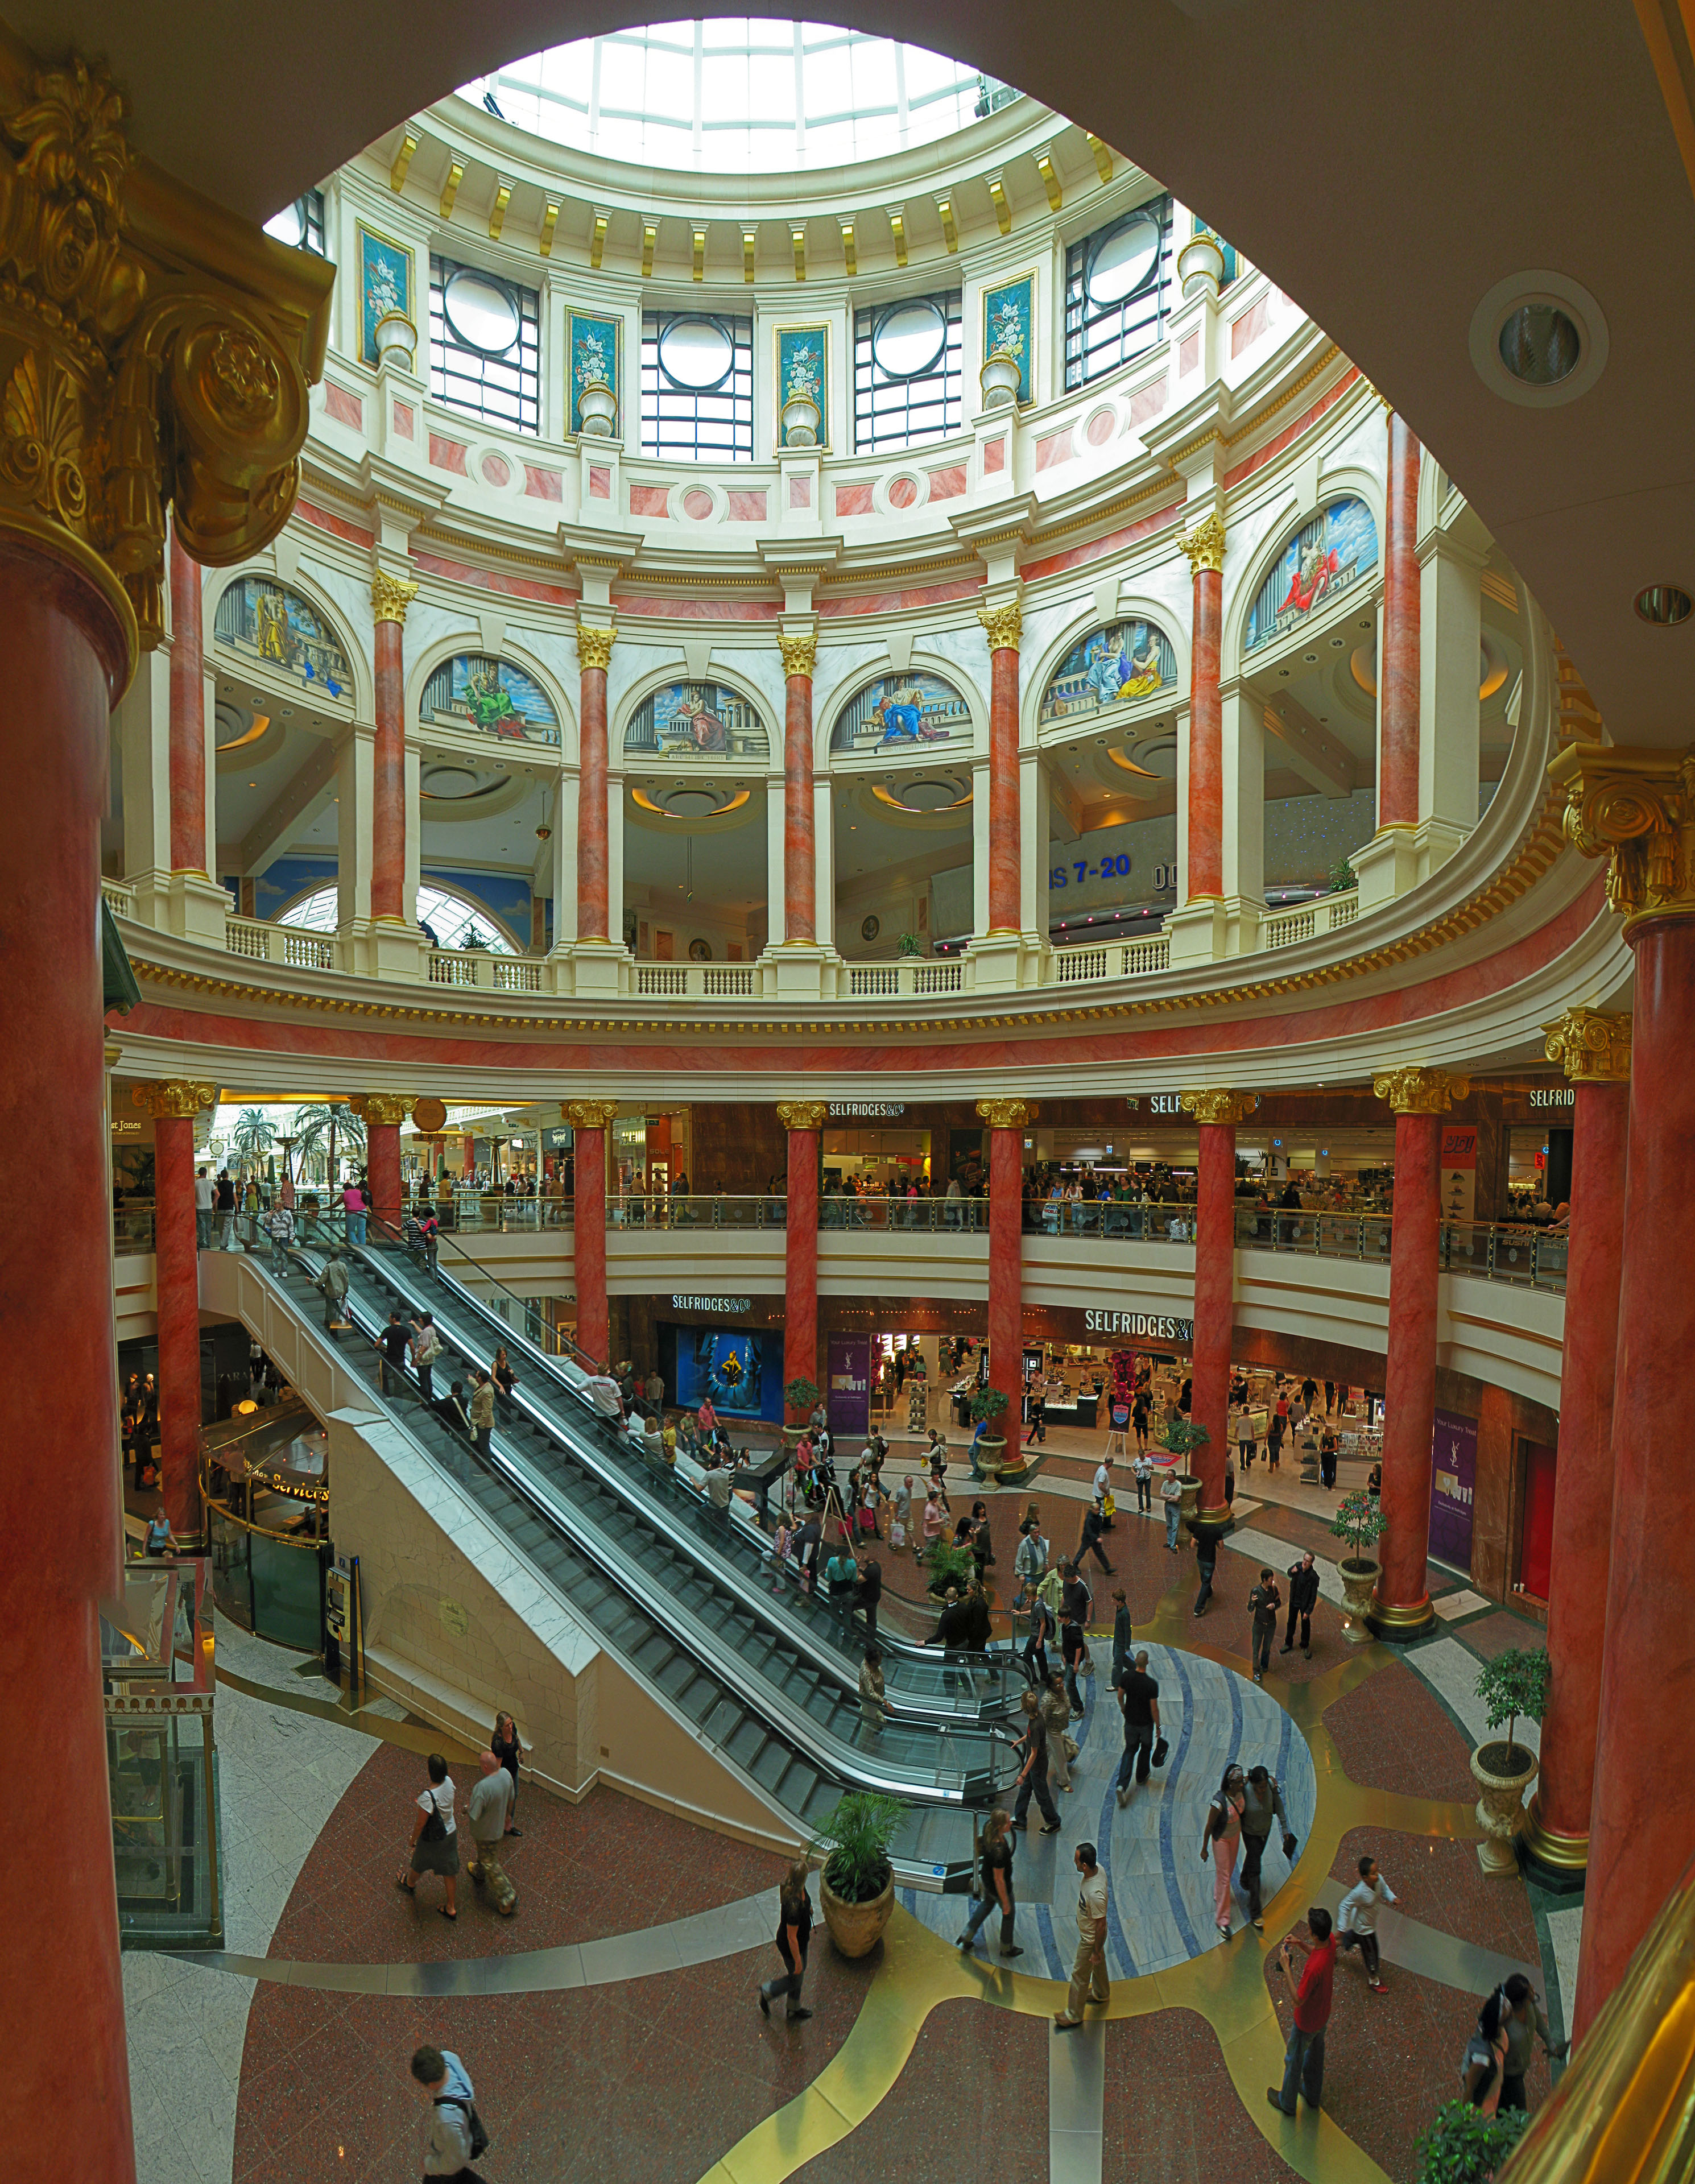 The Trafford Centre is one of the largest shopping centres in the United Kingdom.